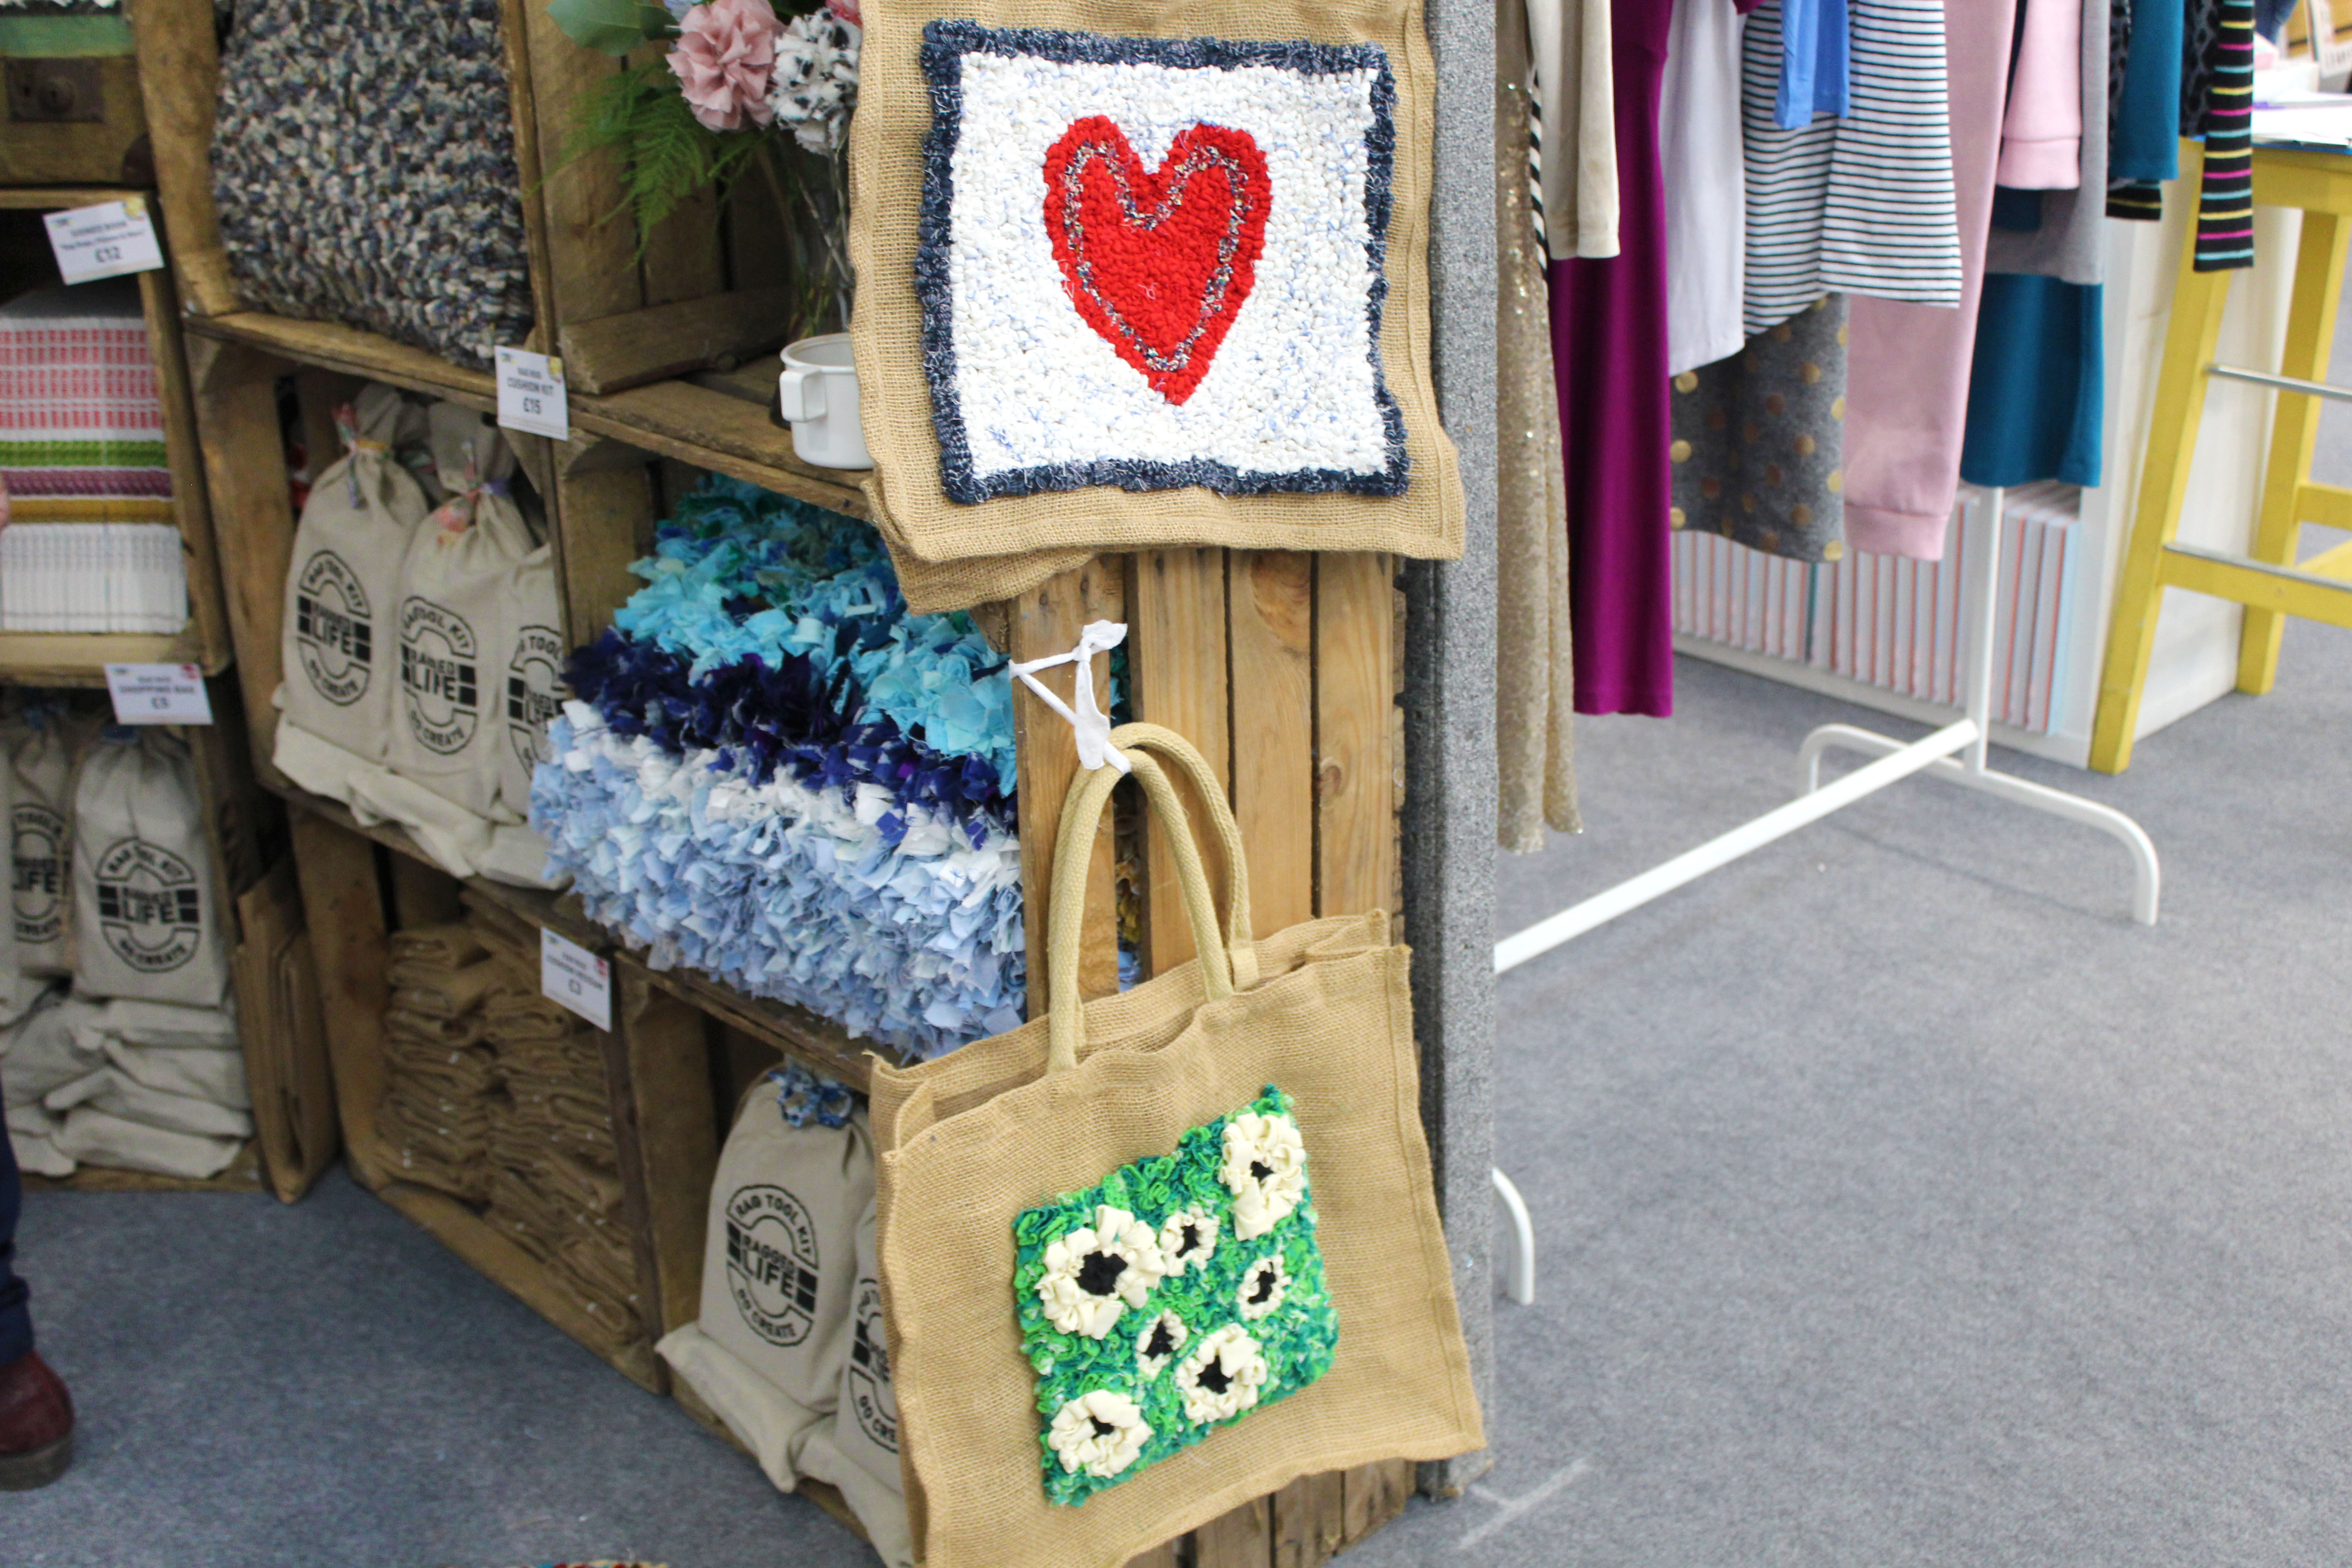 Rag Rug Bags with red heart and green foliage with flowers